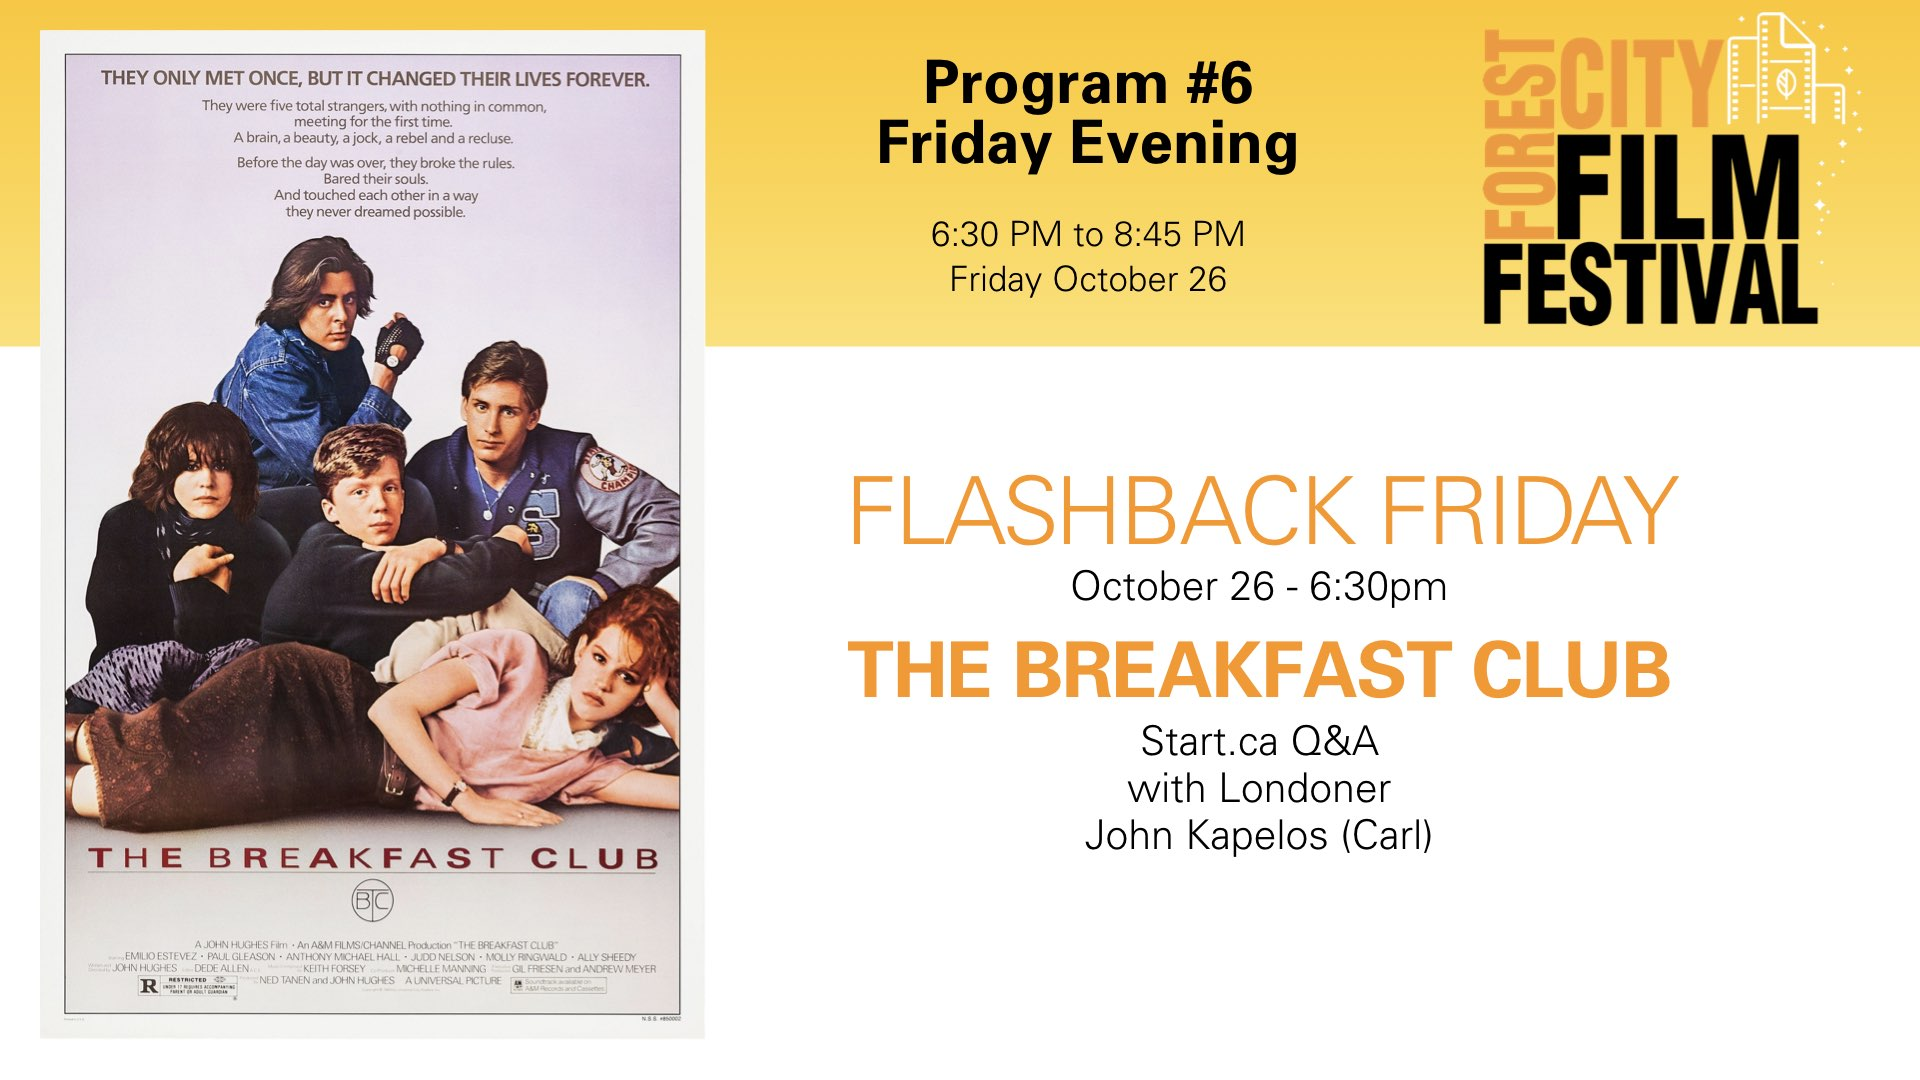 Forest City Film Festival 2018 - FLASHBACK FRIDAY